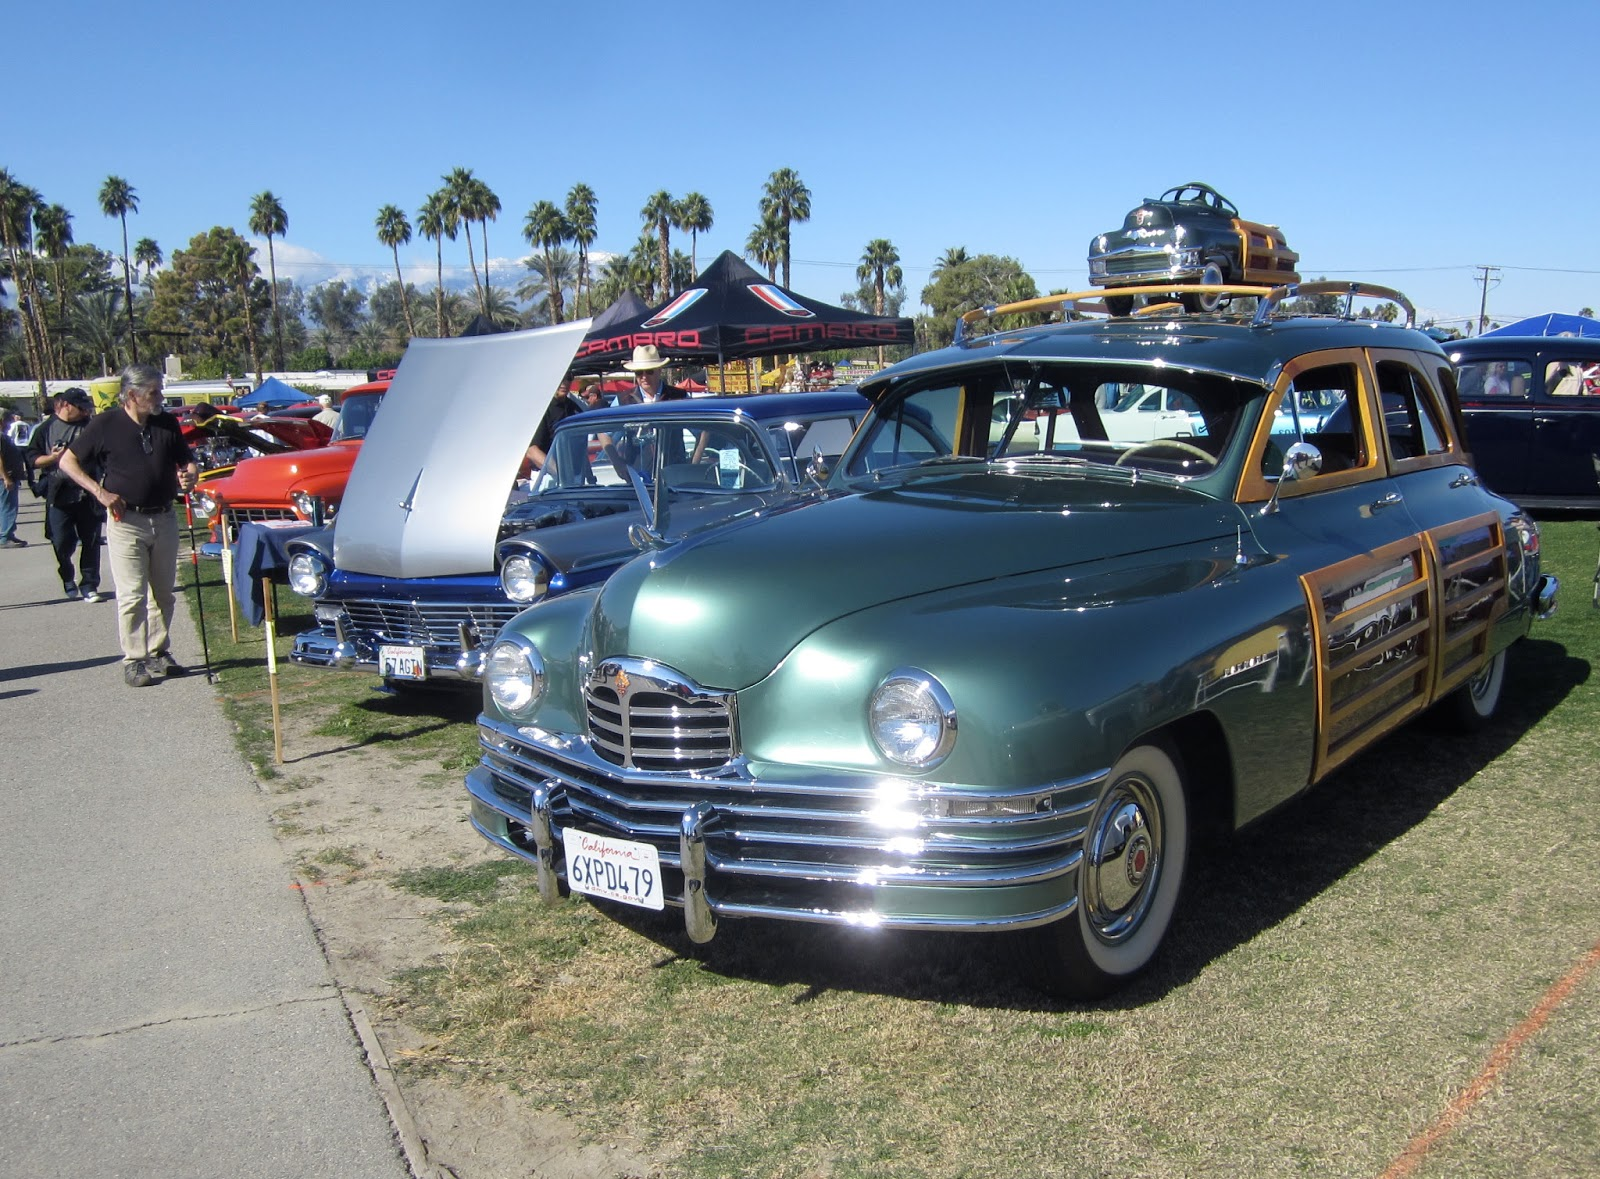 Covering Classic Cars Annual Dr George Charity Car Show In Indian - Palm springs classic car show